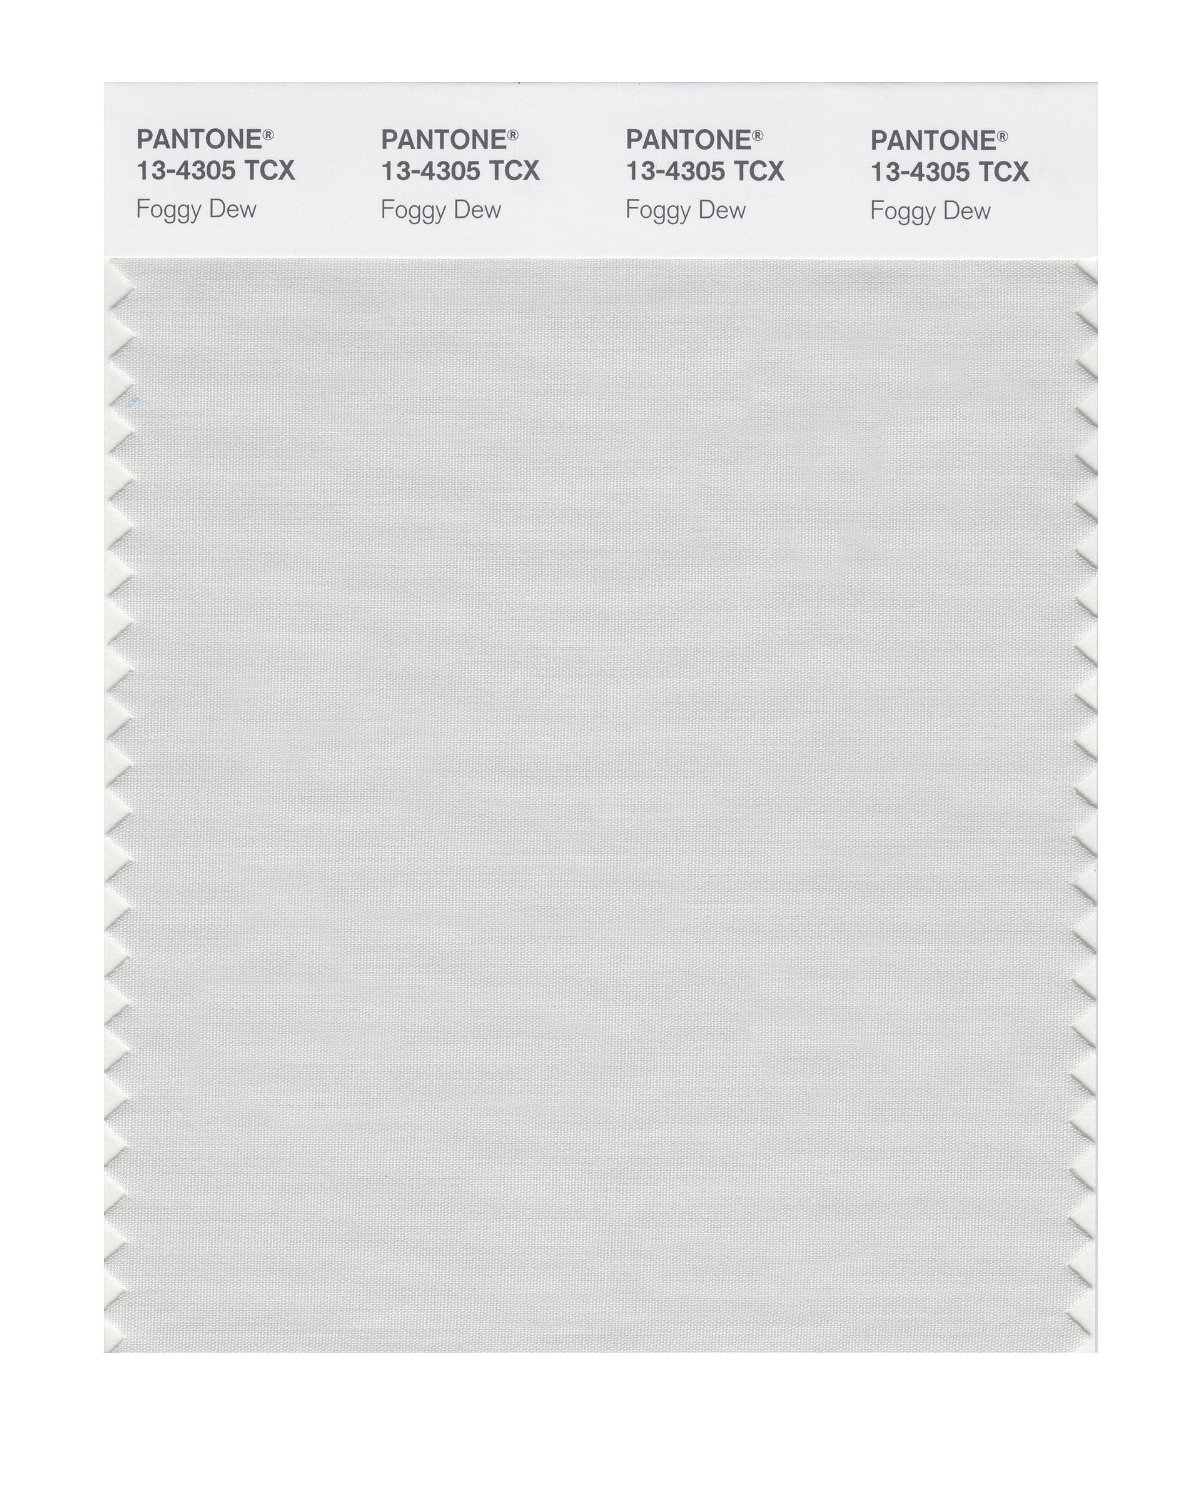 Pantone Smart Swatch 13-4305 Foggy Dew